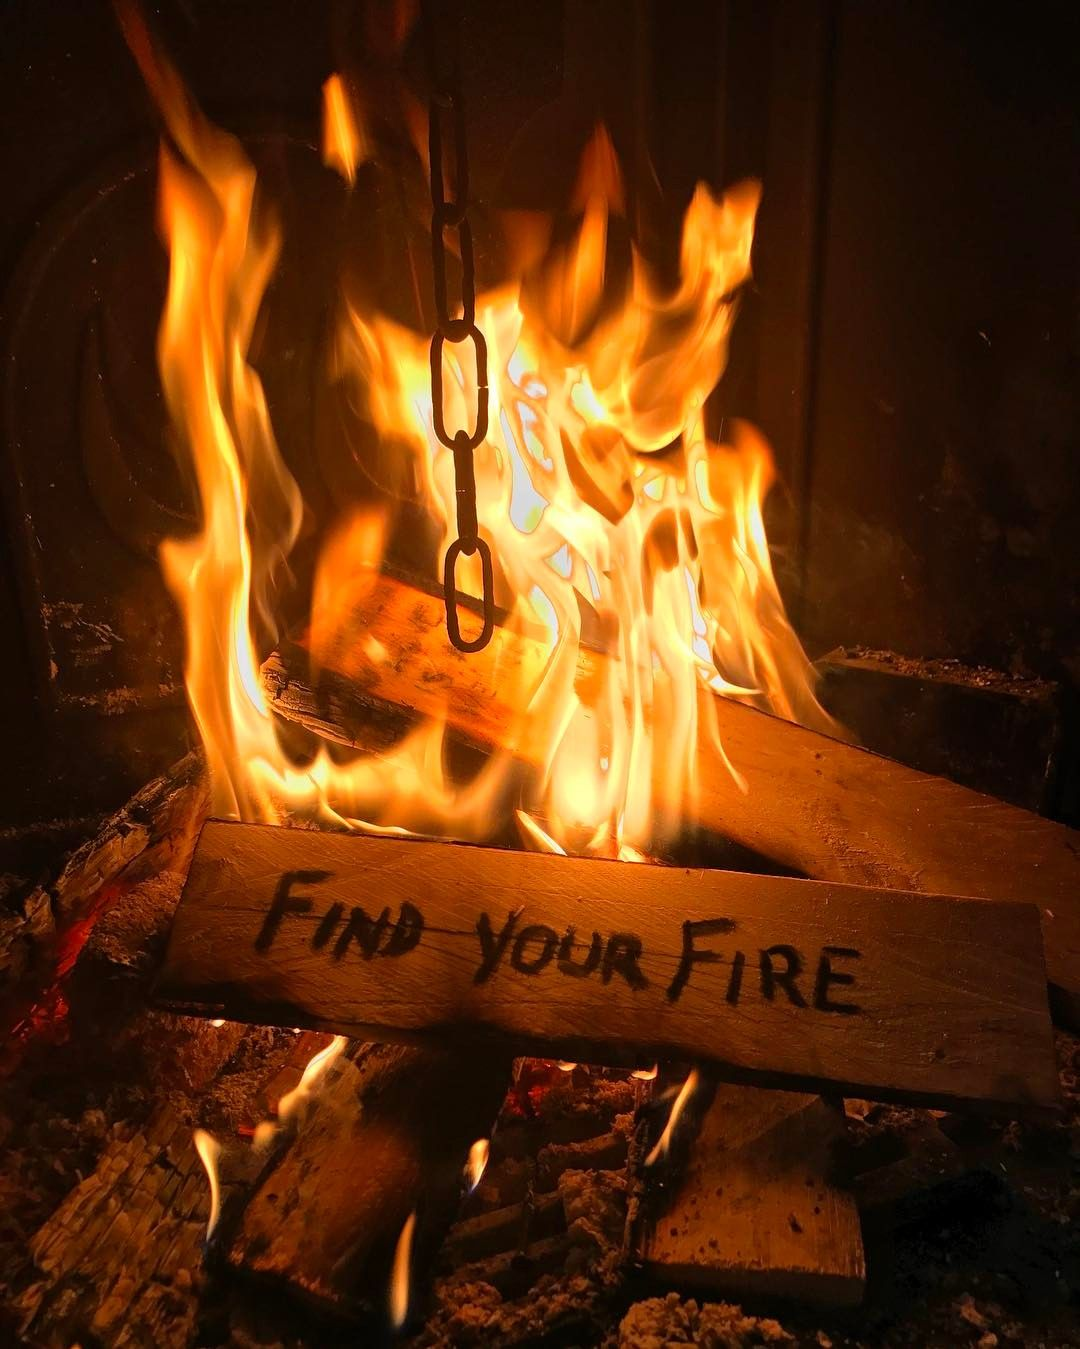 🔥Find your fire🔥 #fire #quote #fireplace #burn #photography #charcoal  #like #🔥 | Fire quotes, Fire image, Finding yourself